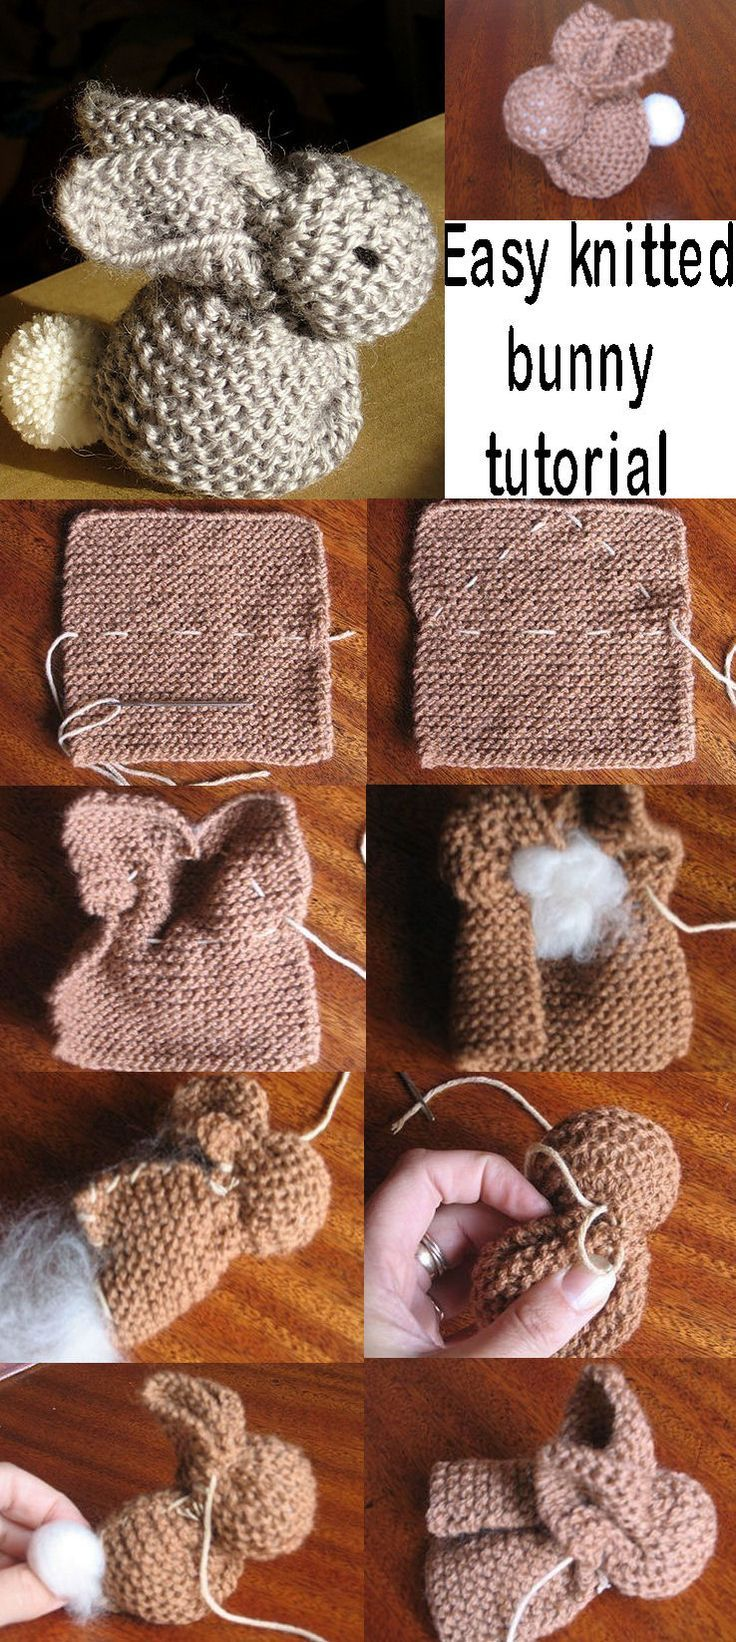 Knitted Bunnies | Super easy, Bunny and Tutorials